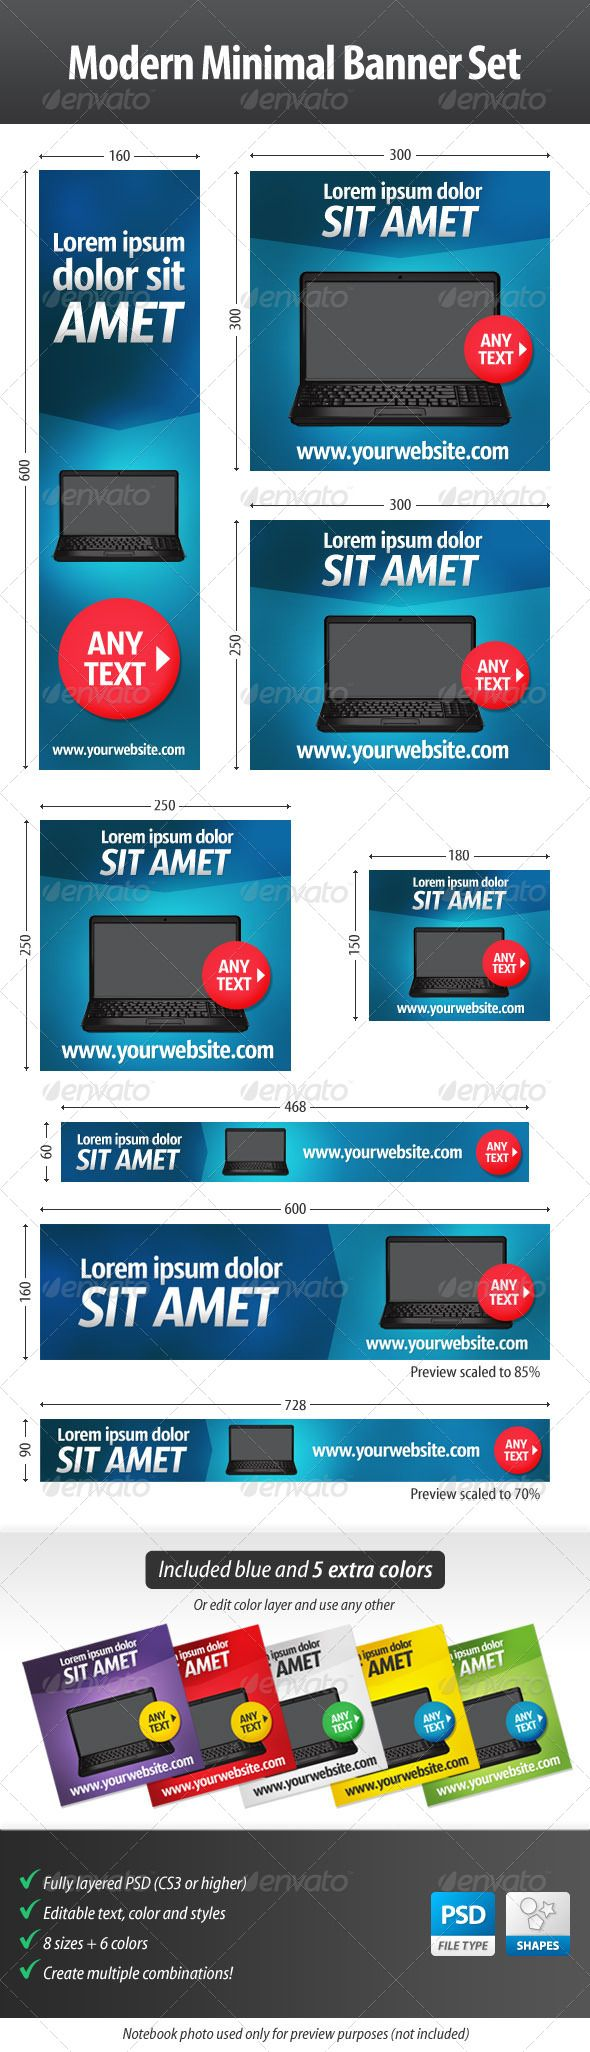 Modern Minimal Web Banner Set  #GraphicRiver         Modern Minimal Web Banner Set – Perfect for retailers of electronics: Create multiple color combinations to fit your needs and save time! Get ready to start your ad campaign with this professional web banner set.  	 Included are: 48 PSDs Minimum Adobe Version: Photoshop CS3  	 Fonts used: Sansus Webissimo – openfontlibrary.org/font/sansus-webissimo     Created: 19April13 GraphicsFilesIncluded: PhotoshopPSD HighResolution: No Layered: Yes…